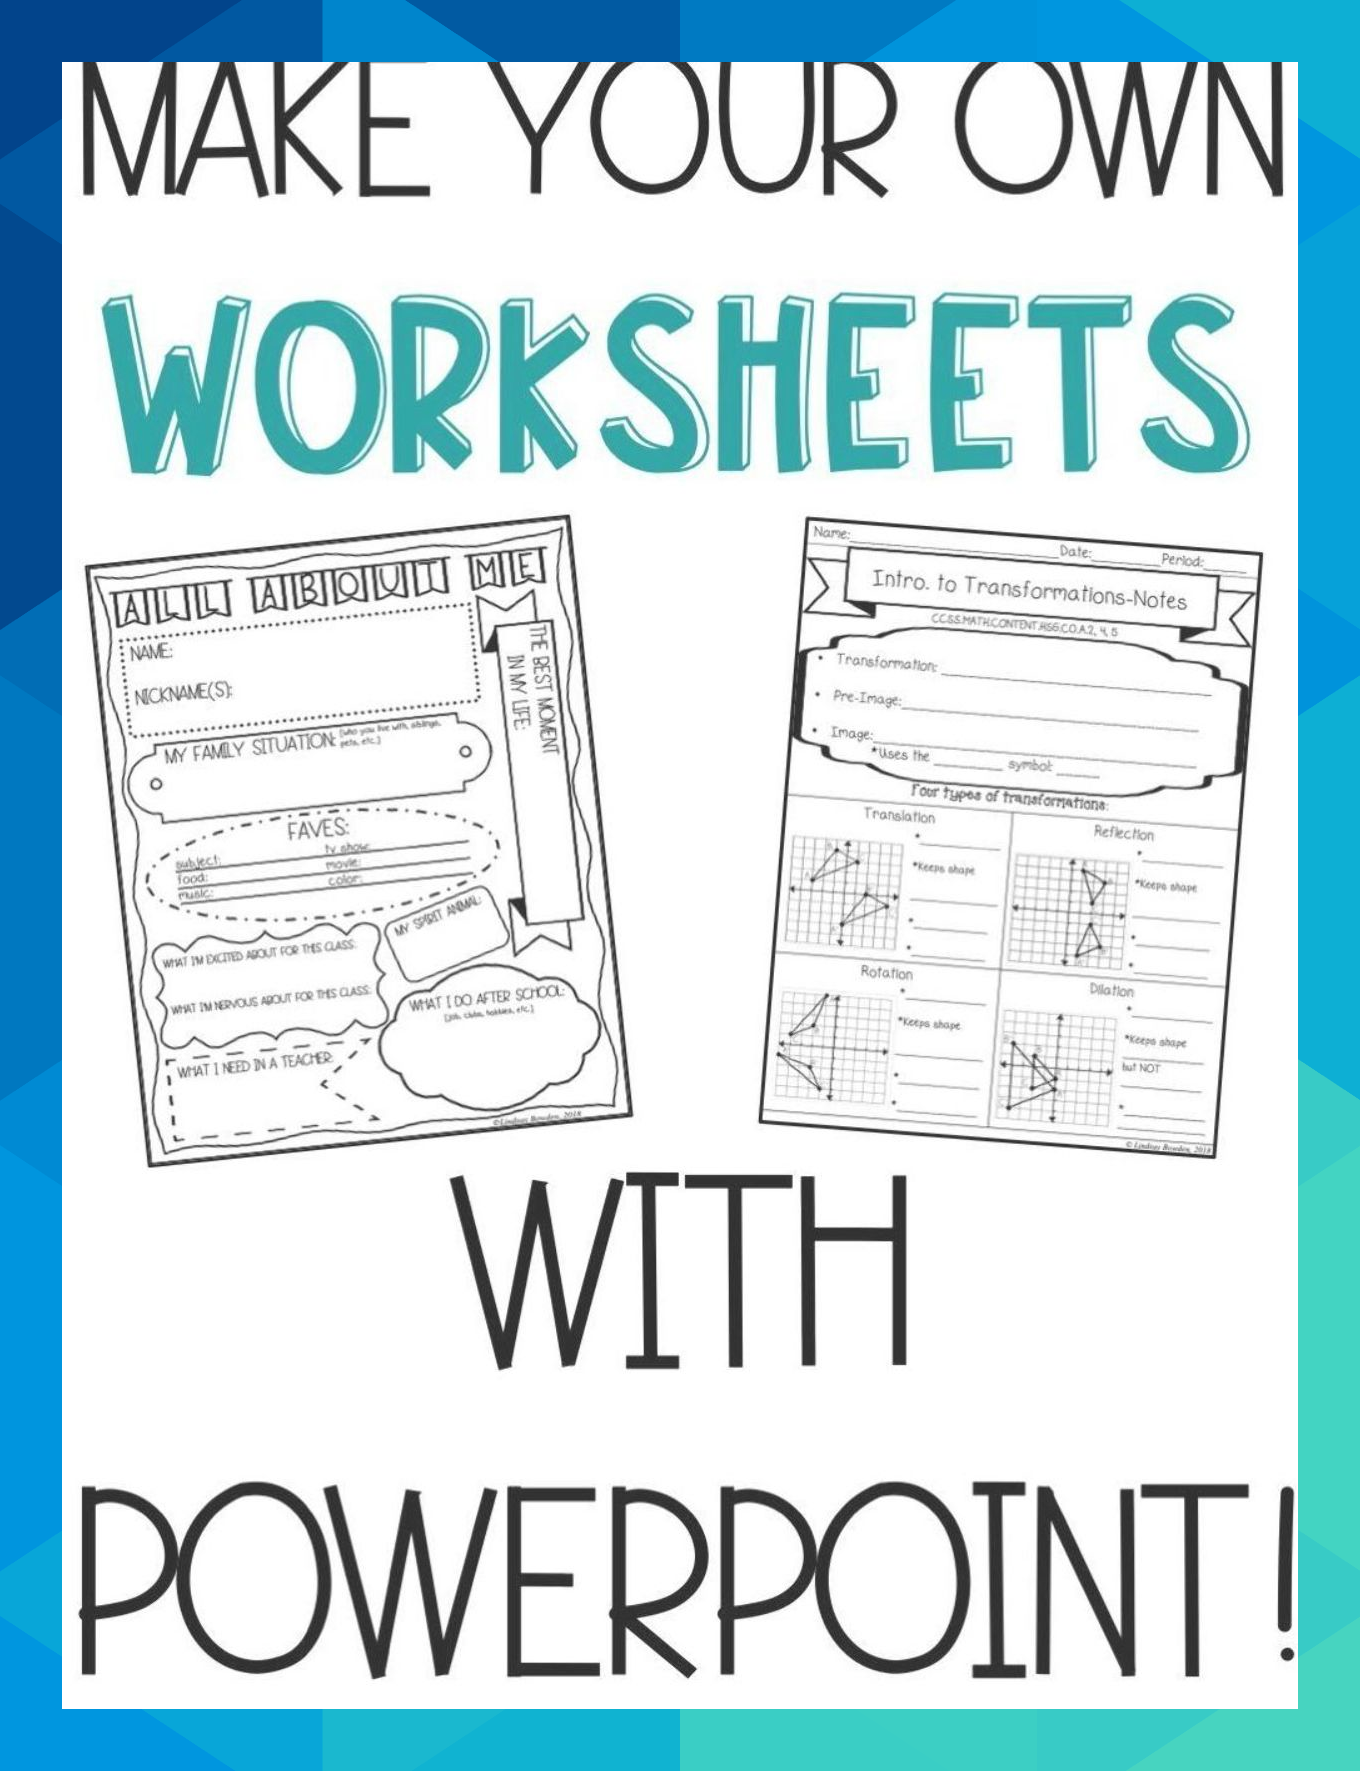 Make Your Own Resources With Powerpoint Six Easy Steps To